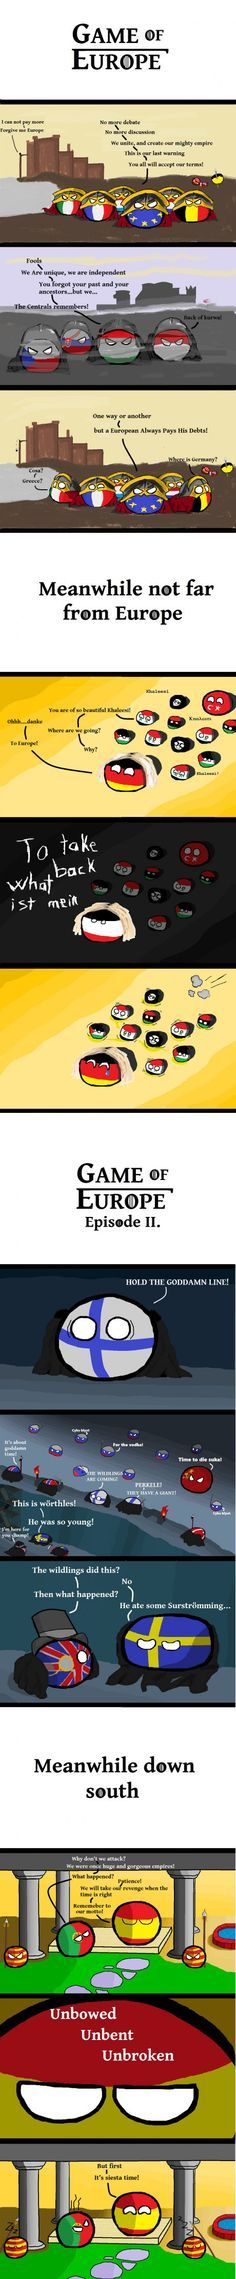 Why Poland is red-white? Our flag is white-red. Who the fuck creates a comic about Europe not even knowing how some flags look like?!